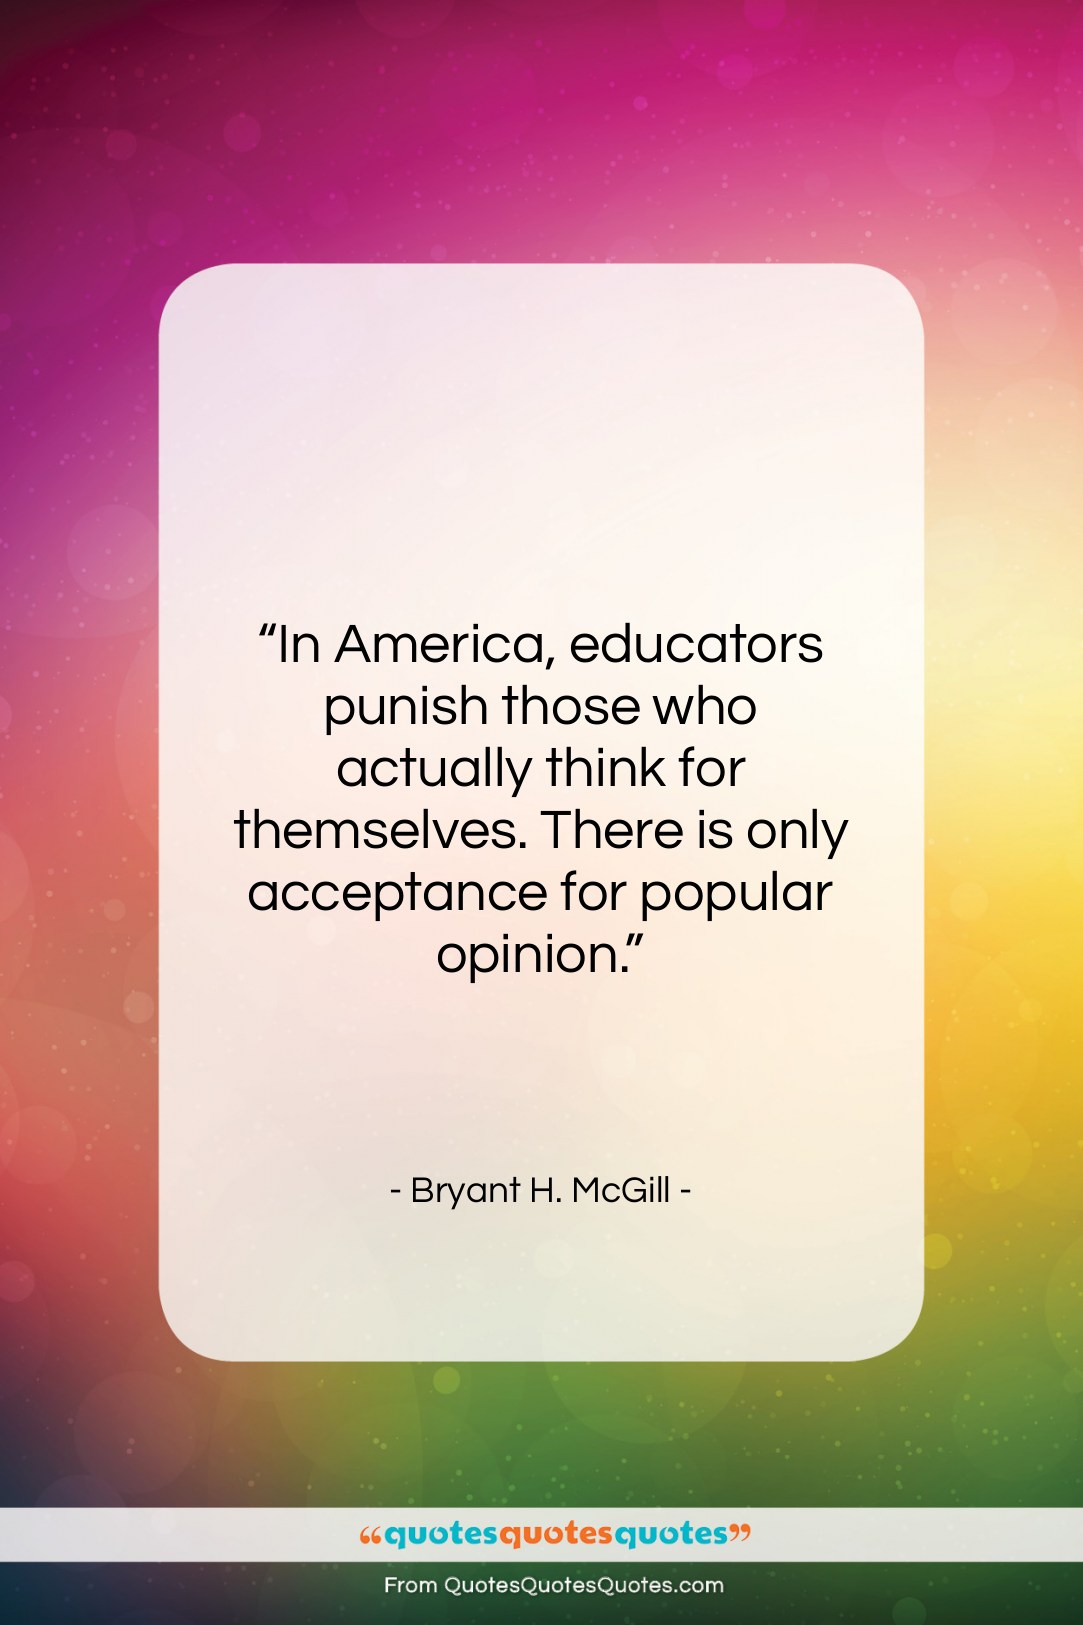 """Bryant H. McGill quote: """"In America, educators punish those who actually…""""- at QuotesQuotesQuotes.com"""